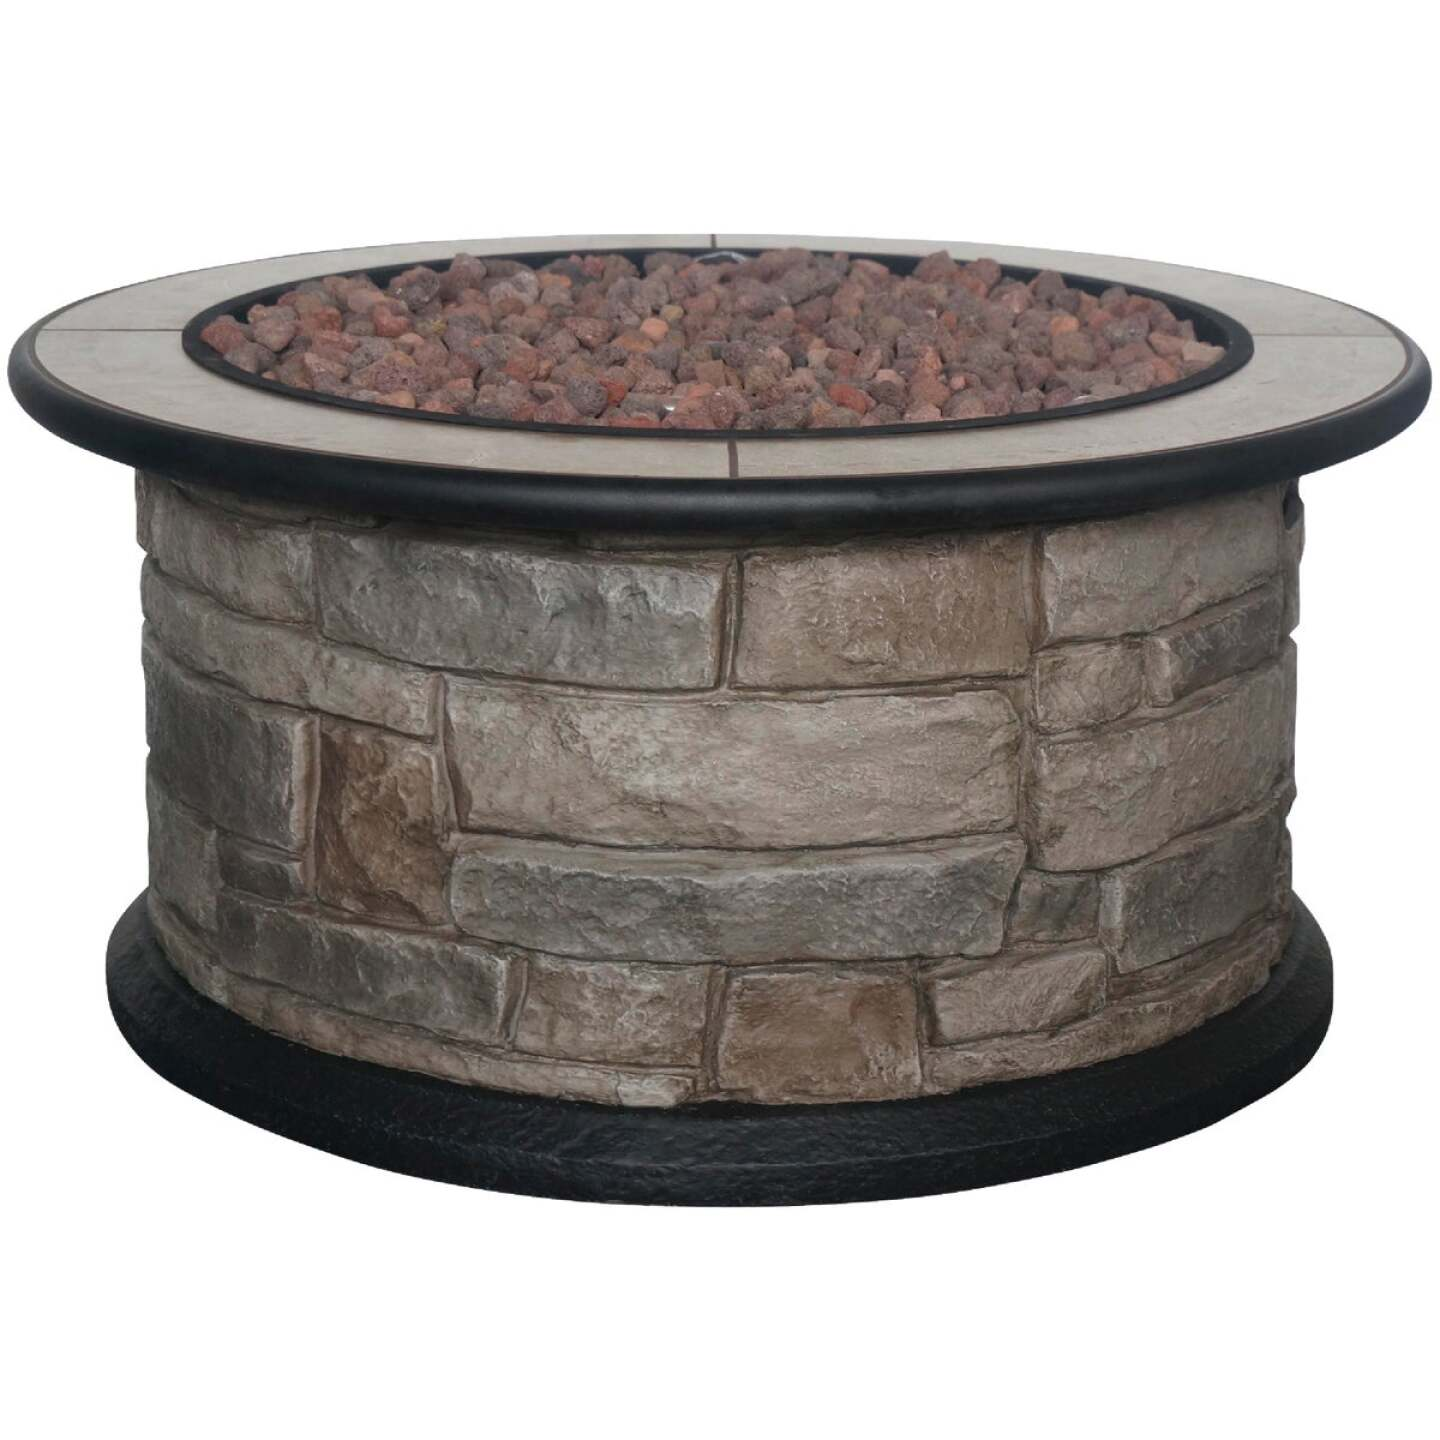 Bond Wellsville 36 In. Round Steel Gas Fire Pit Image 1